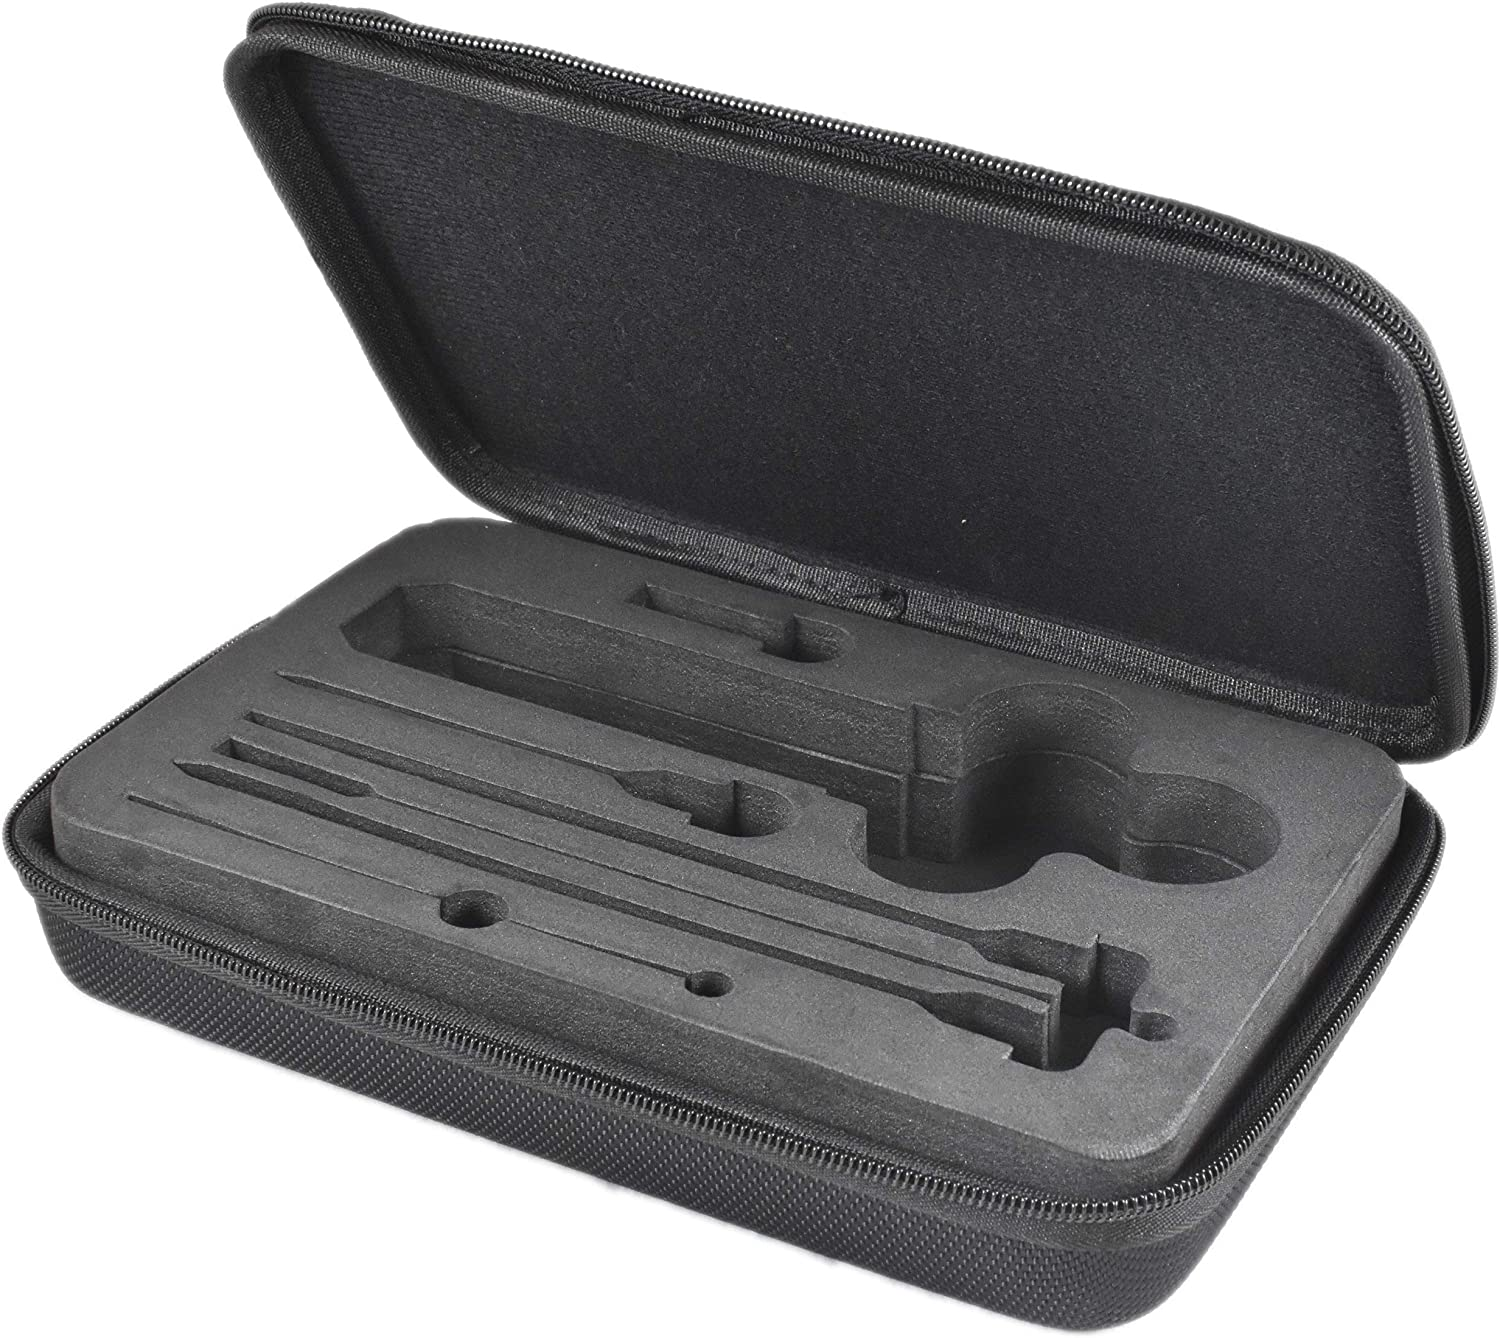 Deluxe Ranking integrated 1st place case for Premiala Meat and compatible products Now free shipping - Injector